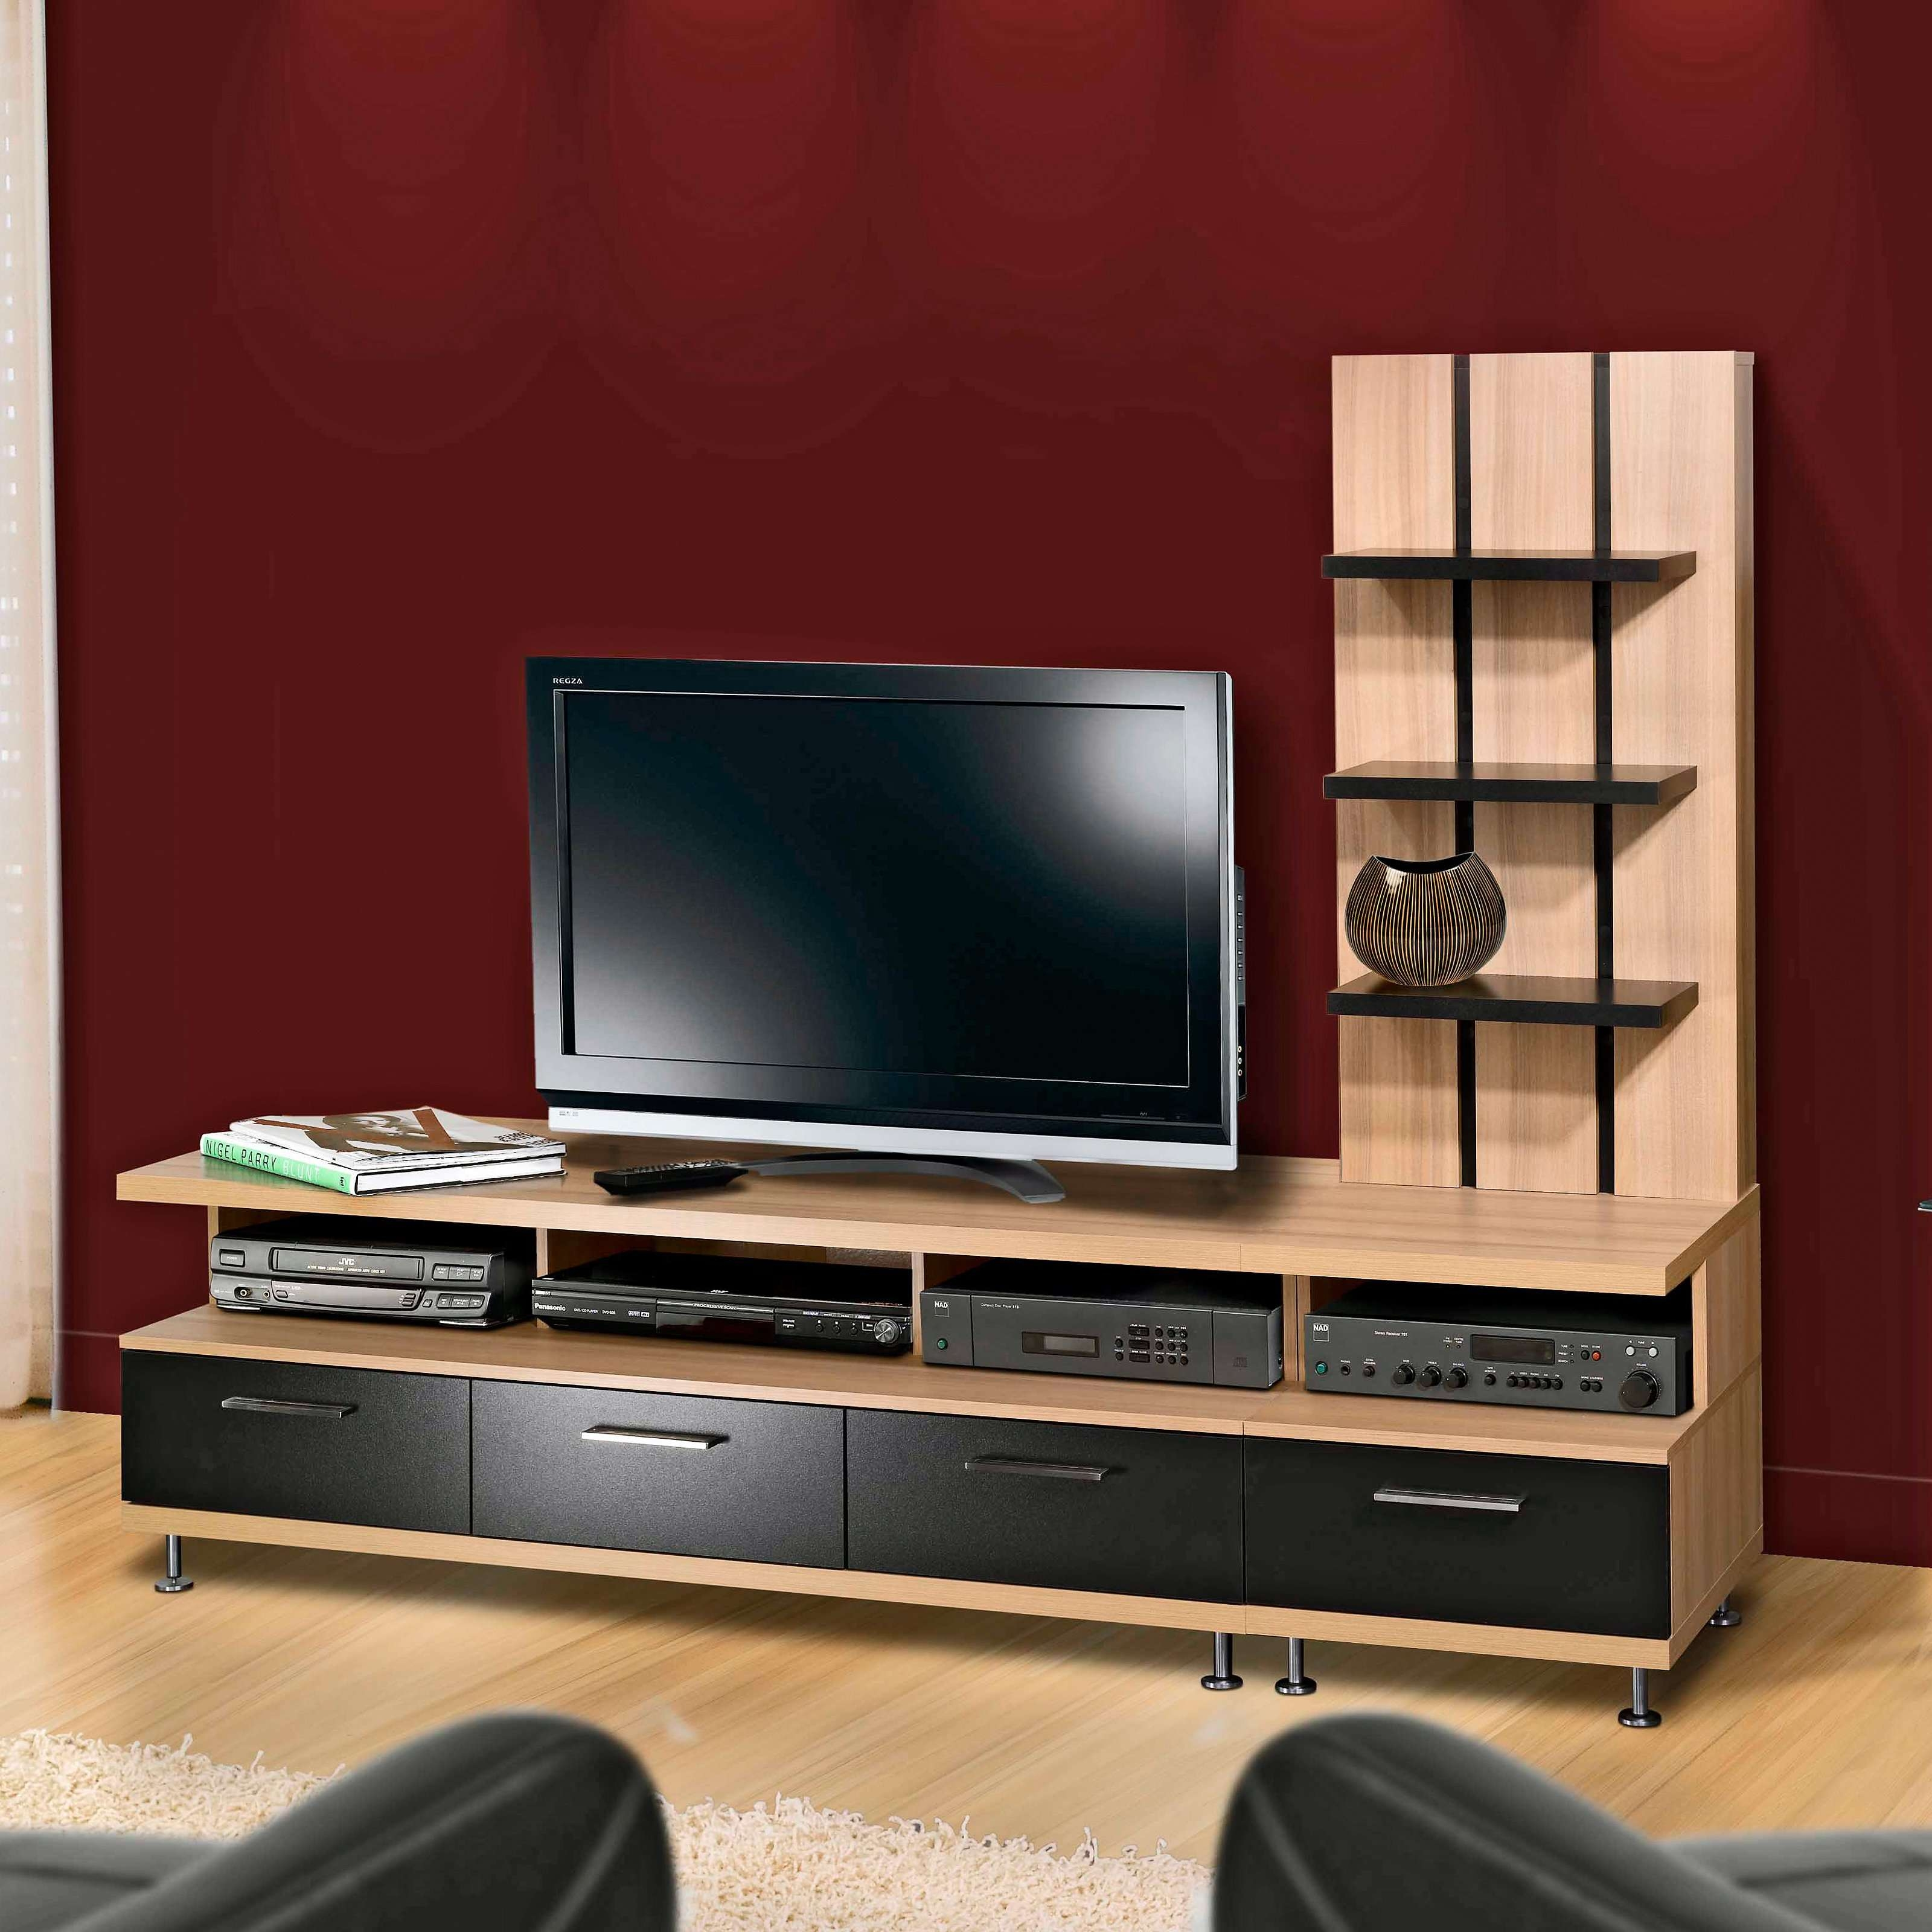 Cheap Entertainment Centers For Flat Screen Tvs With Four Drawers Throughout Unique Tv Stands For Flat Screens (View 13 of 15)